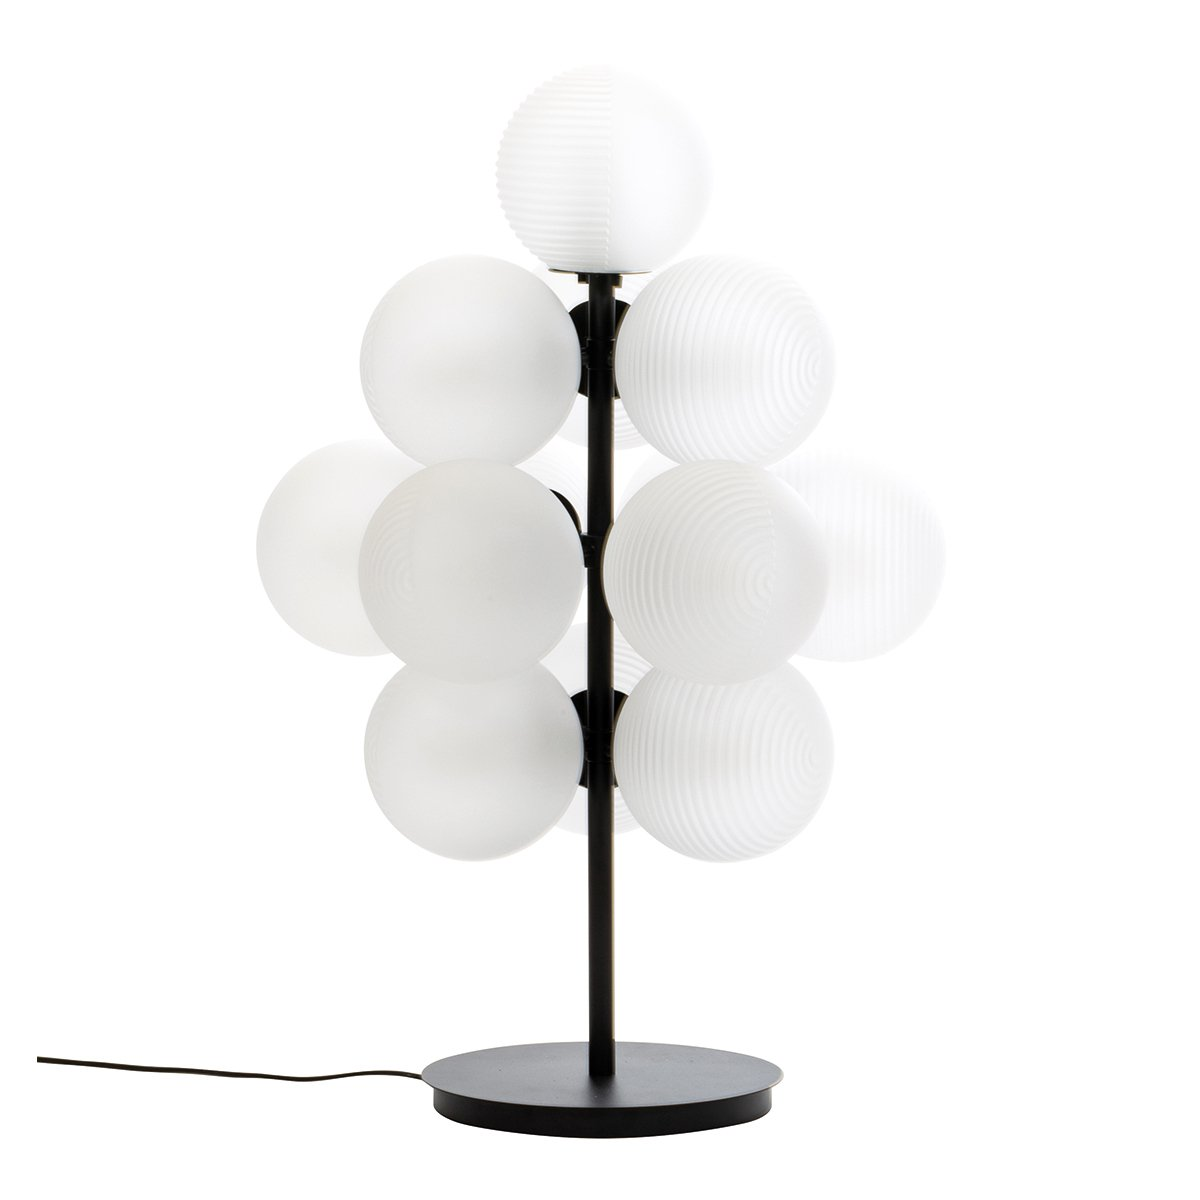 Pulpo Stellar Grape Vloerlamp Small by Sebastian Herkner - Wit